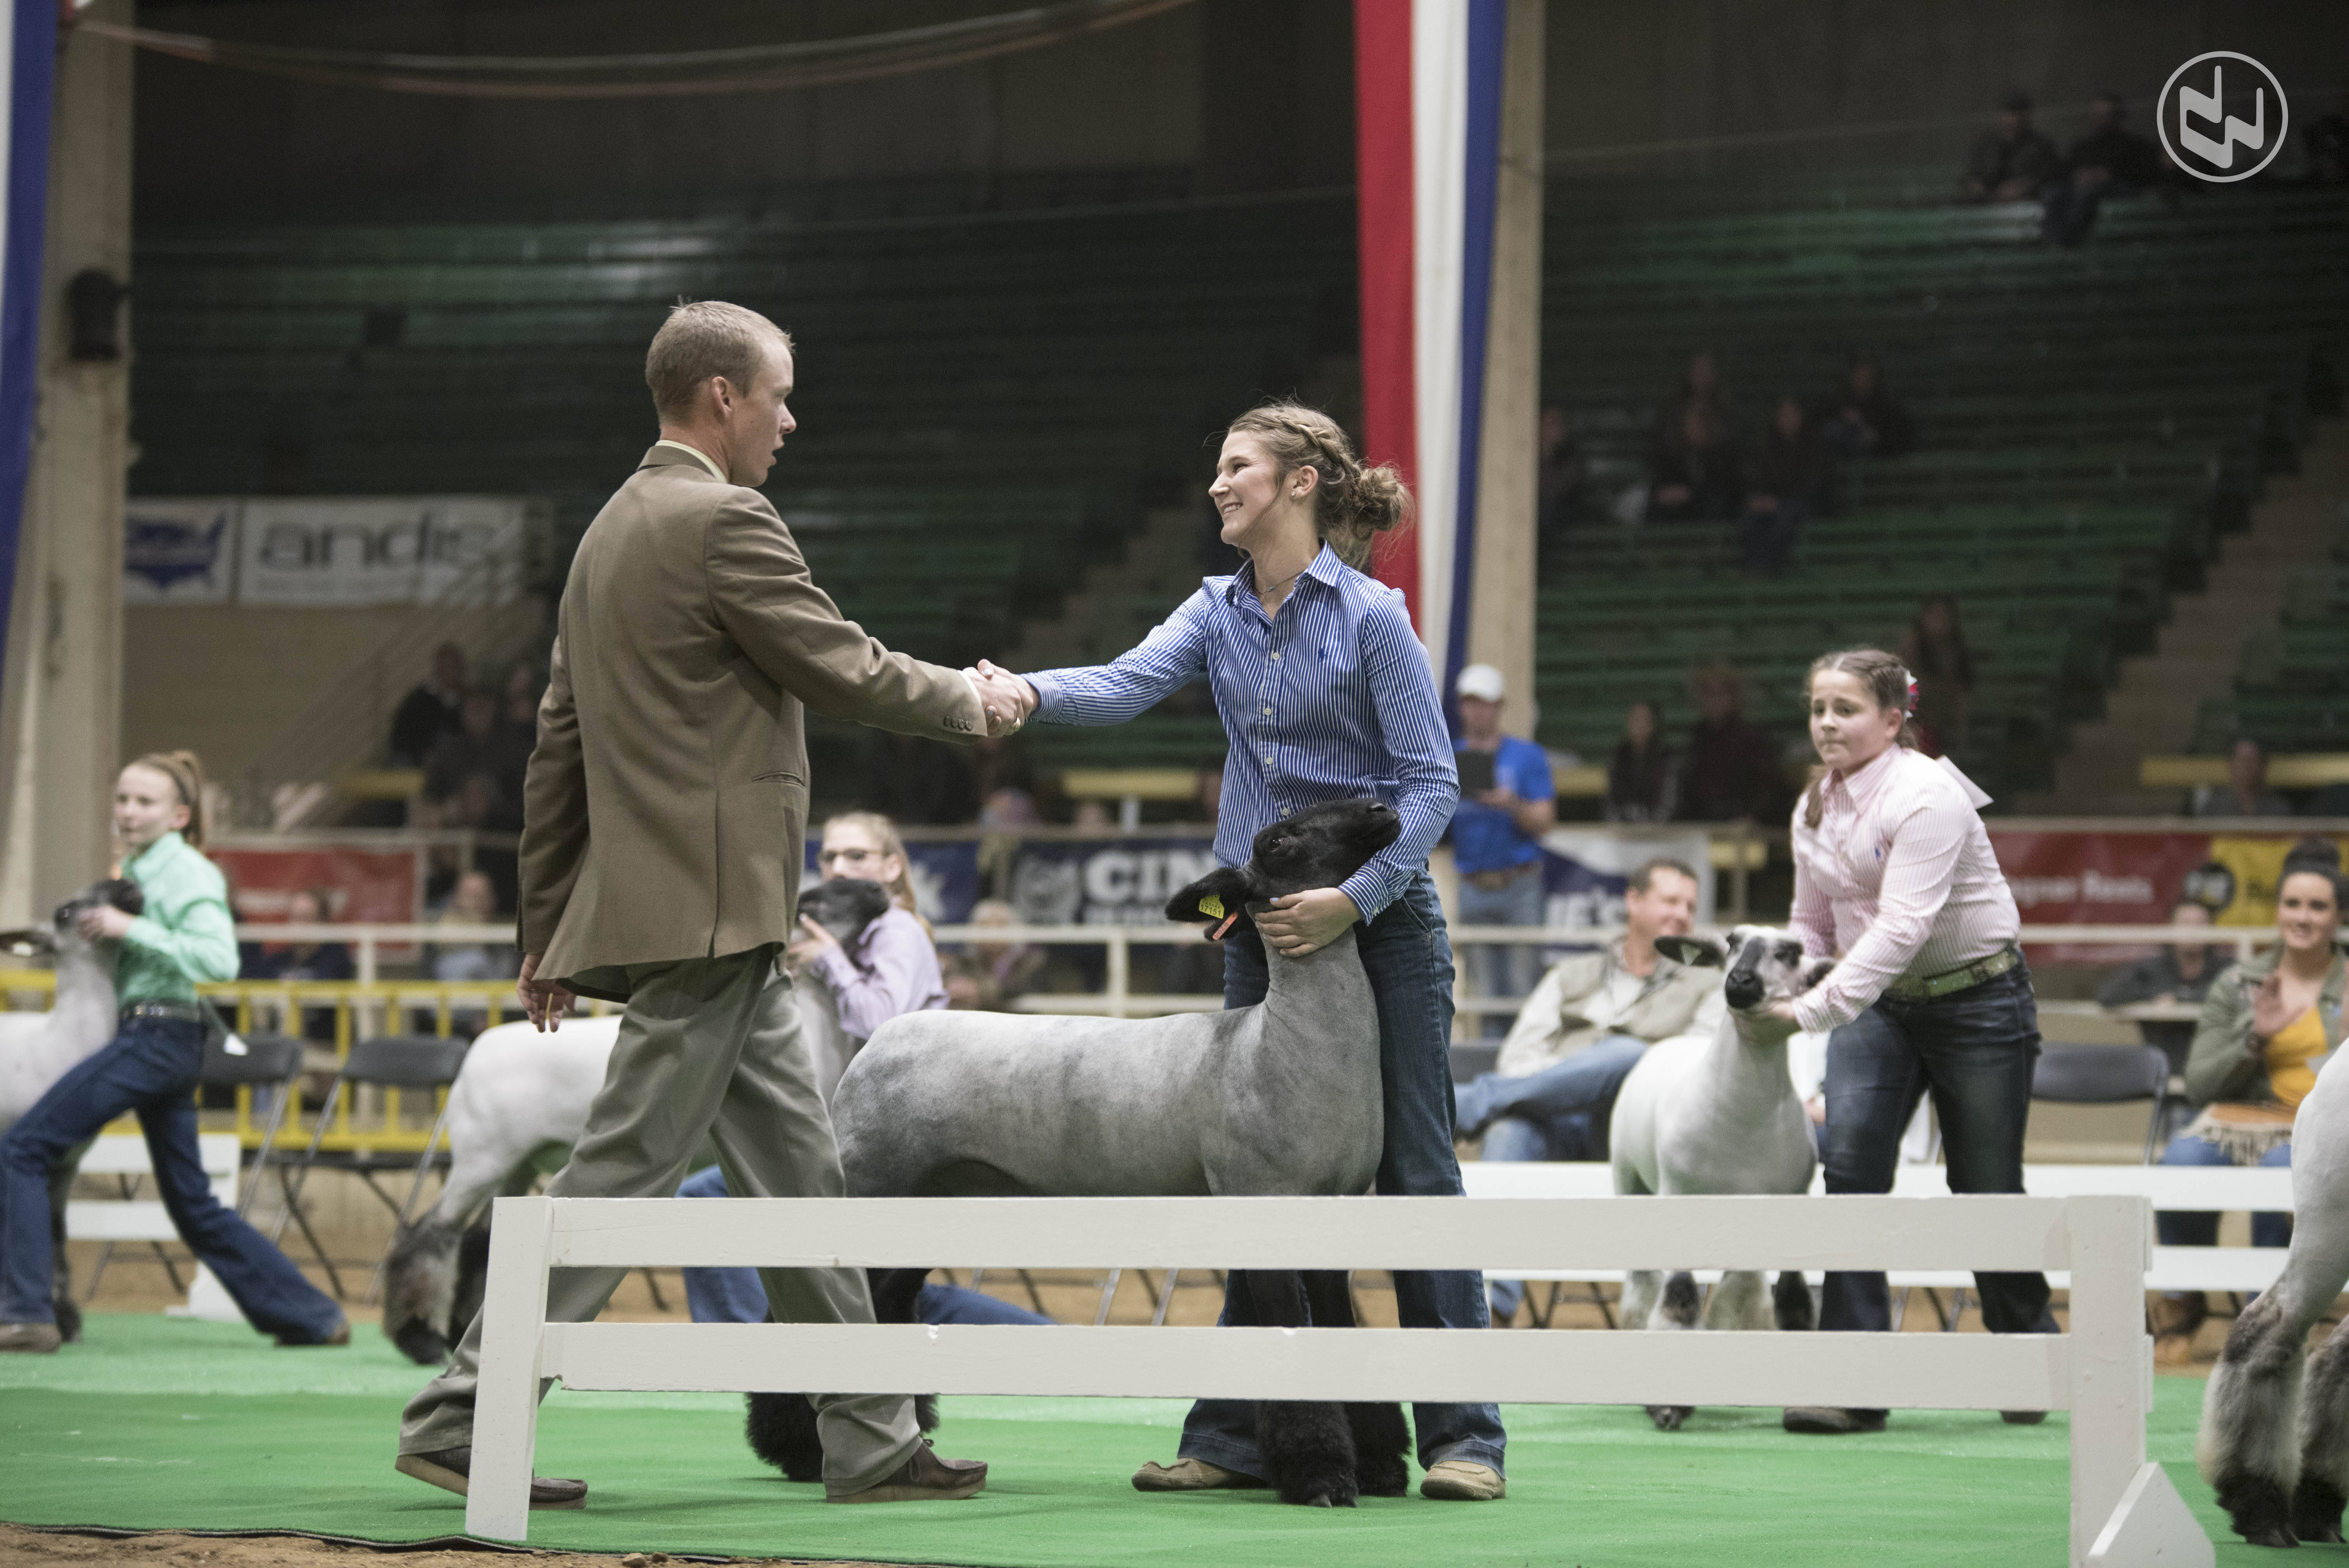 Caleb Boardman shakes hands with participant in sheep arena.